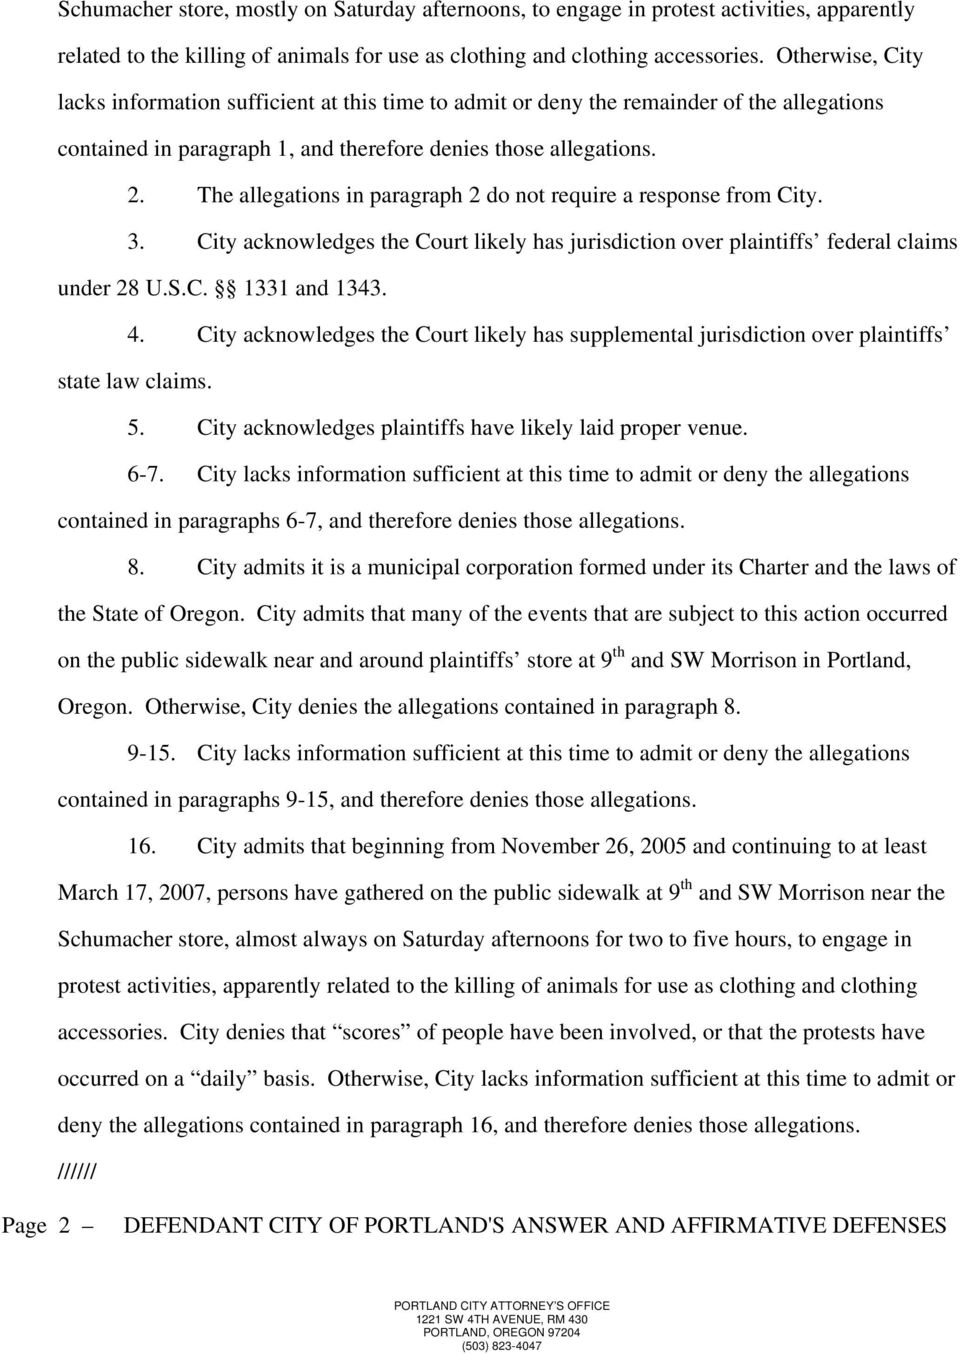 The allegations in paragraph 2 do not require a response from City. 3. City acknowledges the Court likely has jurisdiction over plaintiffs federal claims under 28 U.S.C. 1331 and 1343. 4.